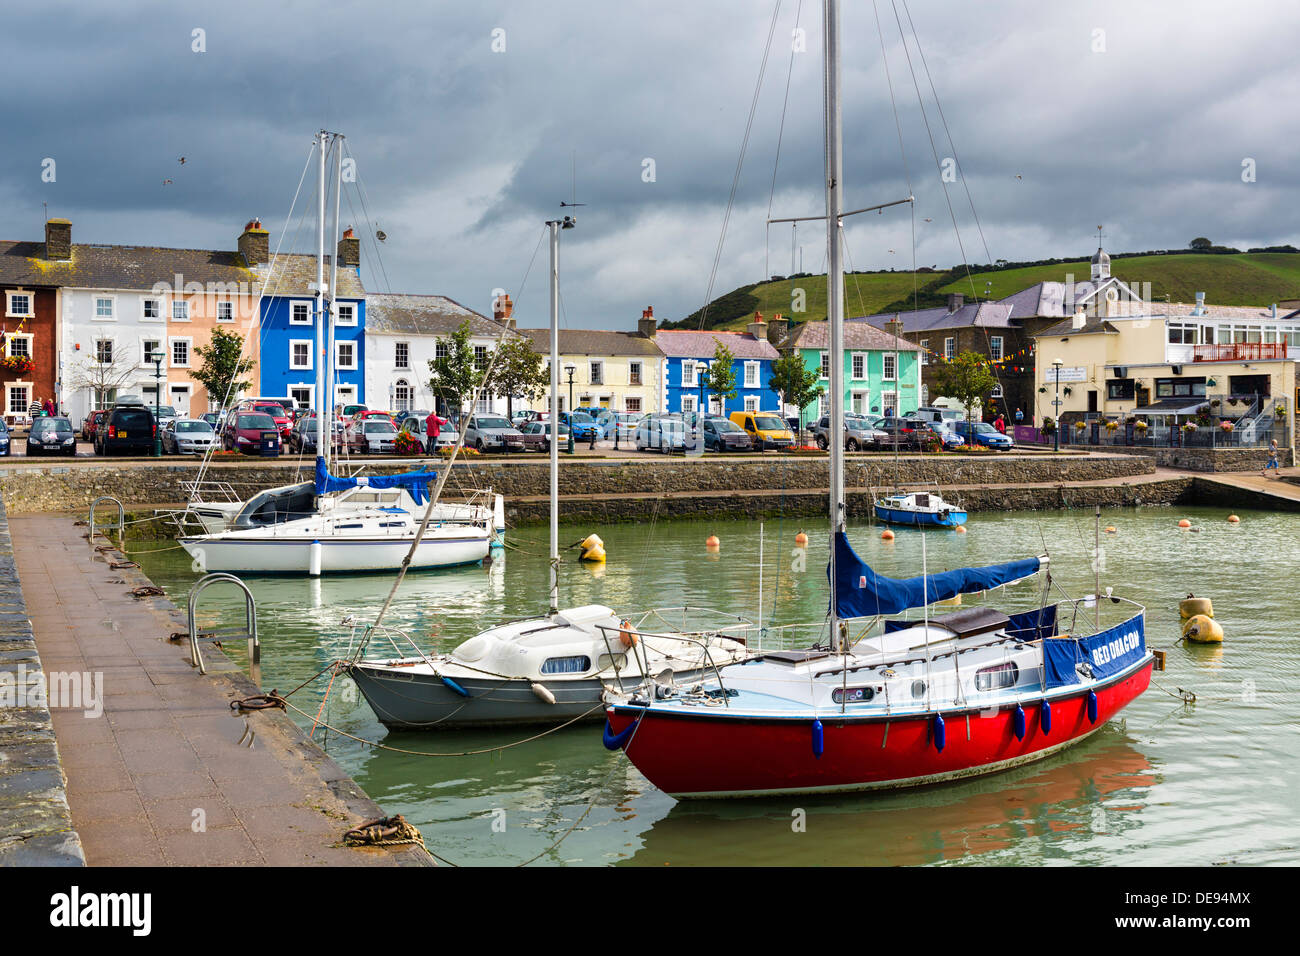 Boats in the harbour in the seaside village of Aberaeron, Ceredigion, Wales, UK - Stock Image